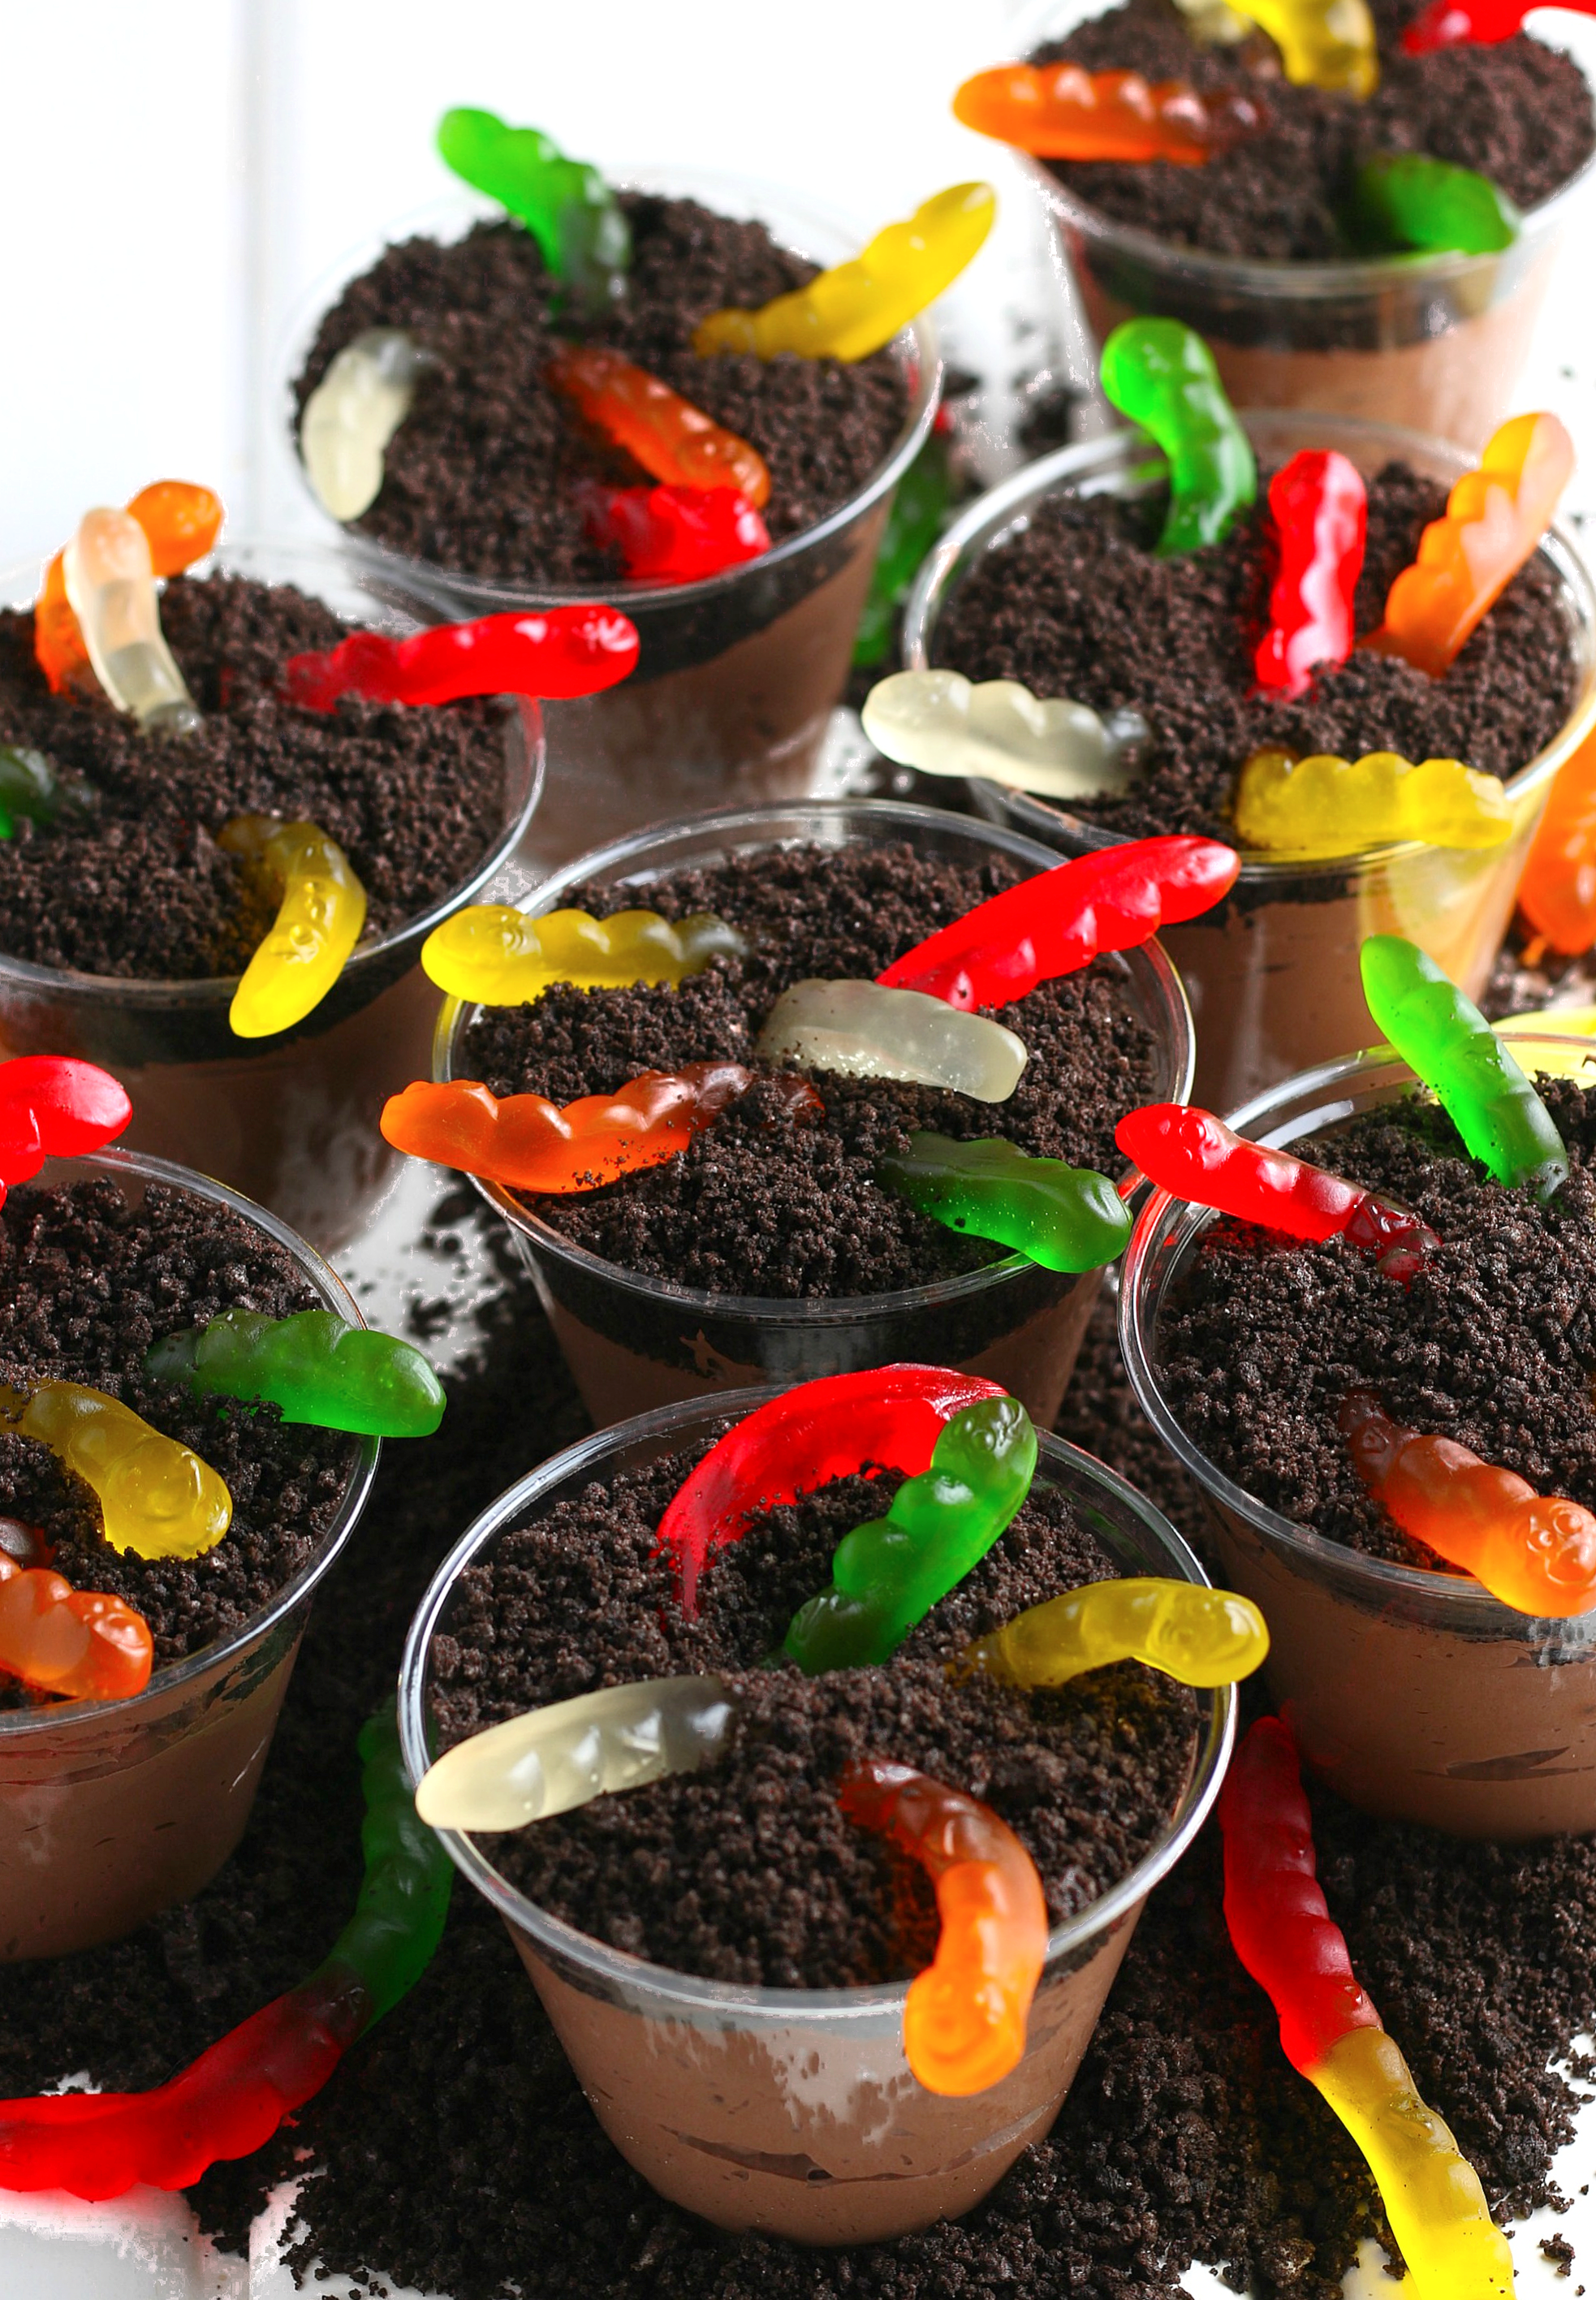 Oreo Dirt Cups with chocolate pudding, Oreos, and gummy worms.